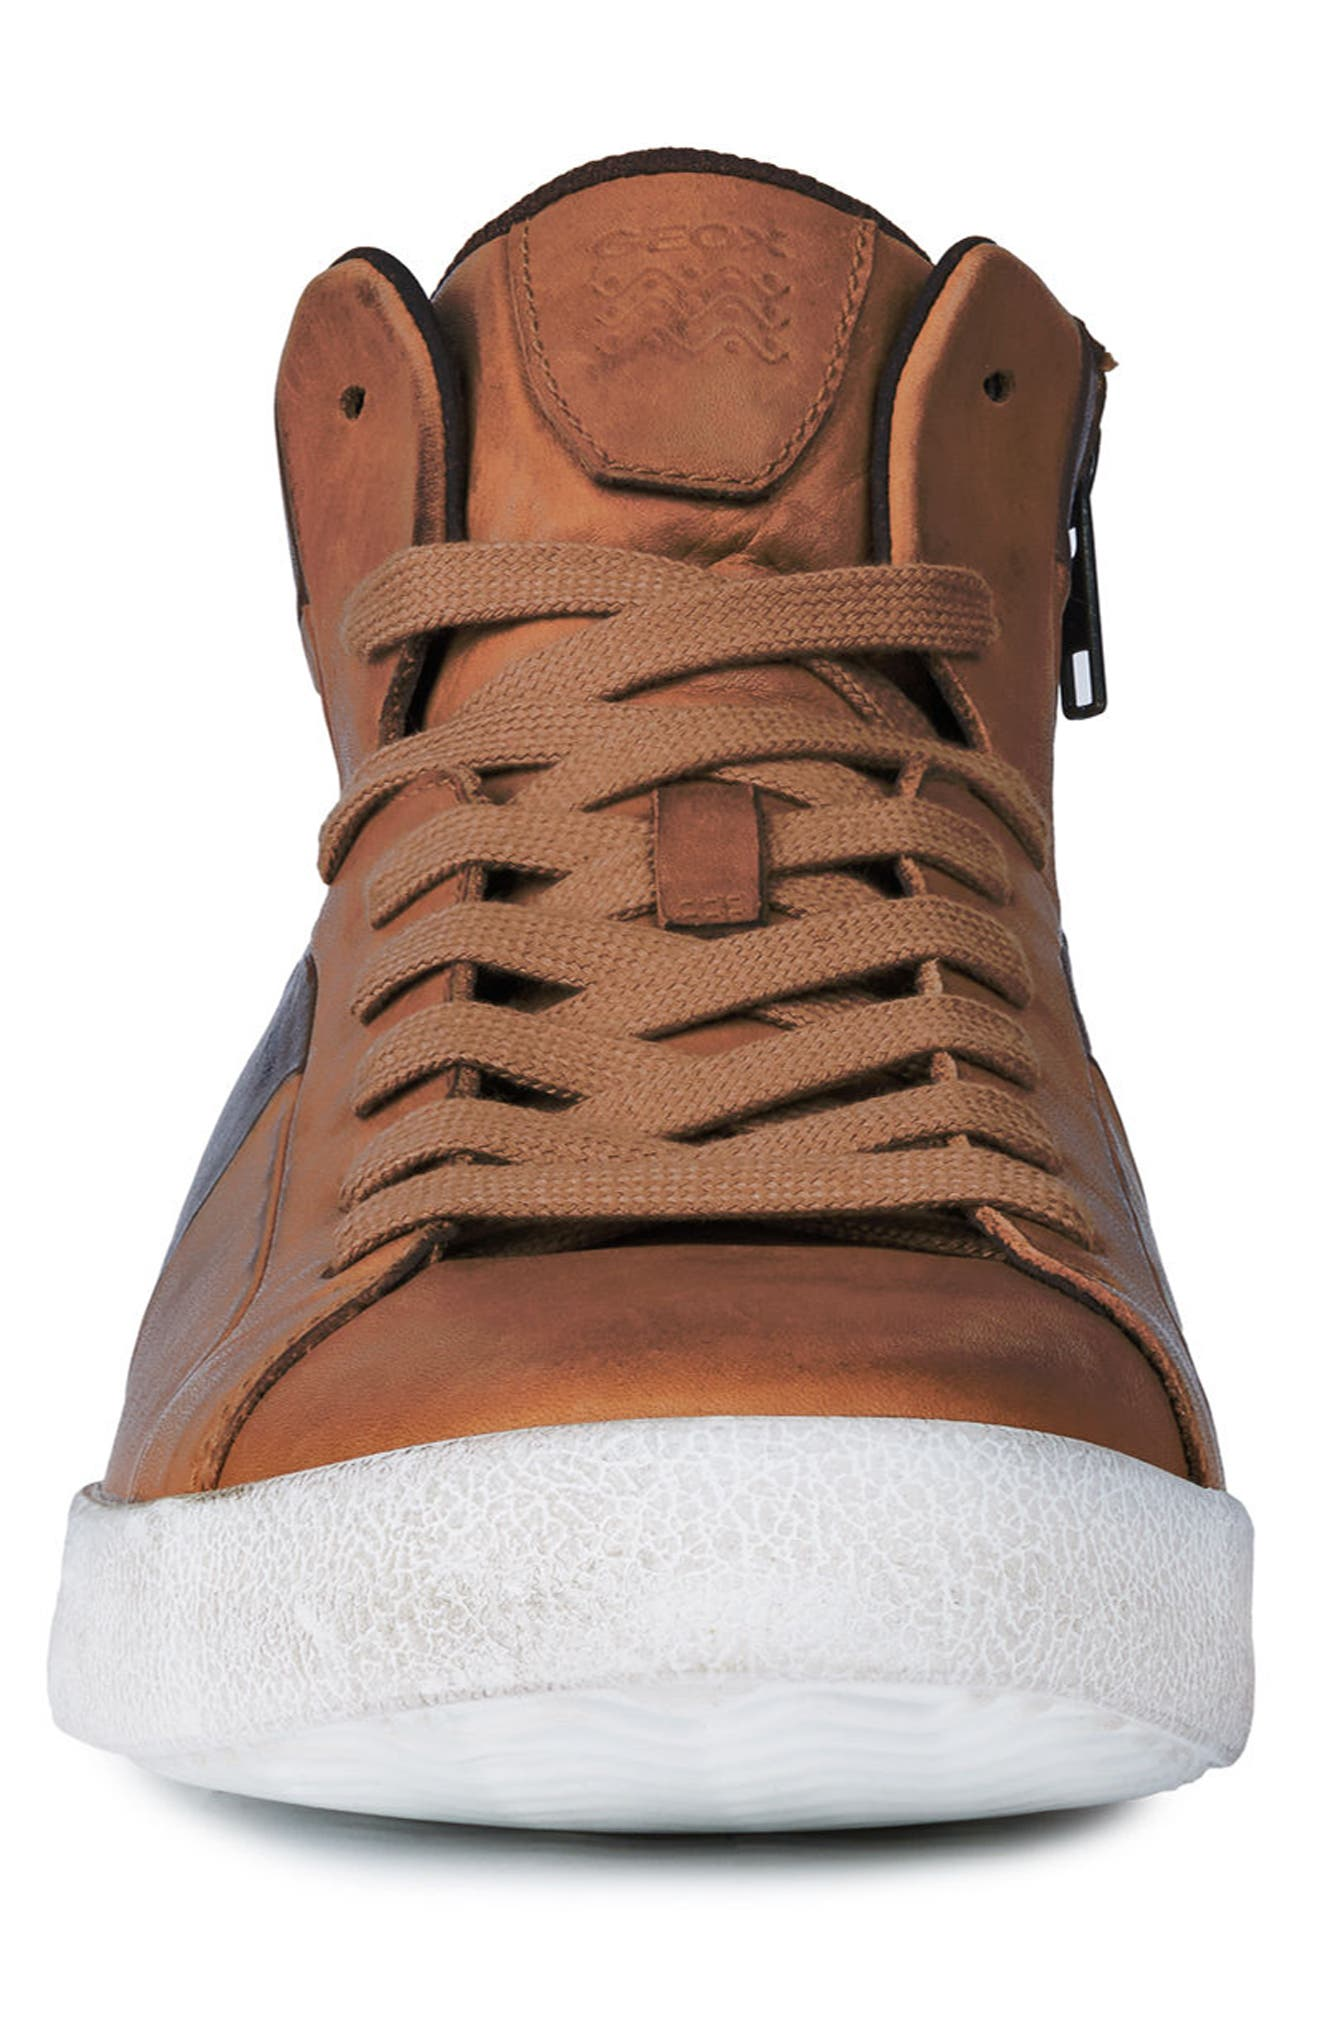 Smart 84 High Top Sneaker,                             Alternate thumbnail 4, color,                             COGNAC/ COFFEE LEATHER